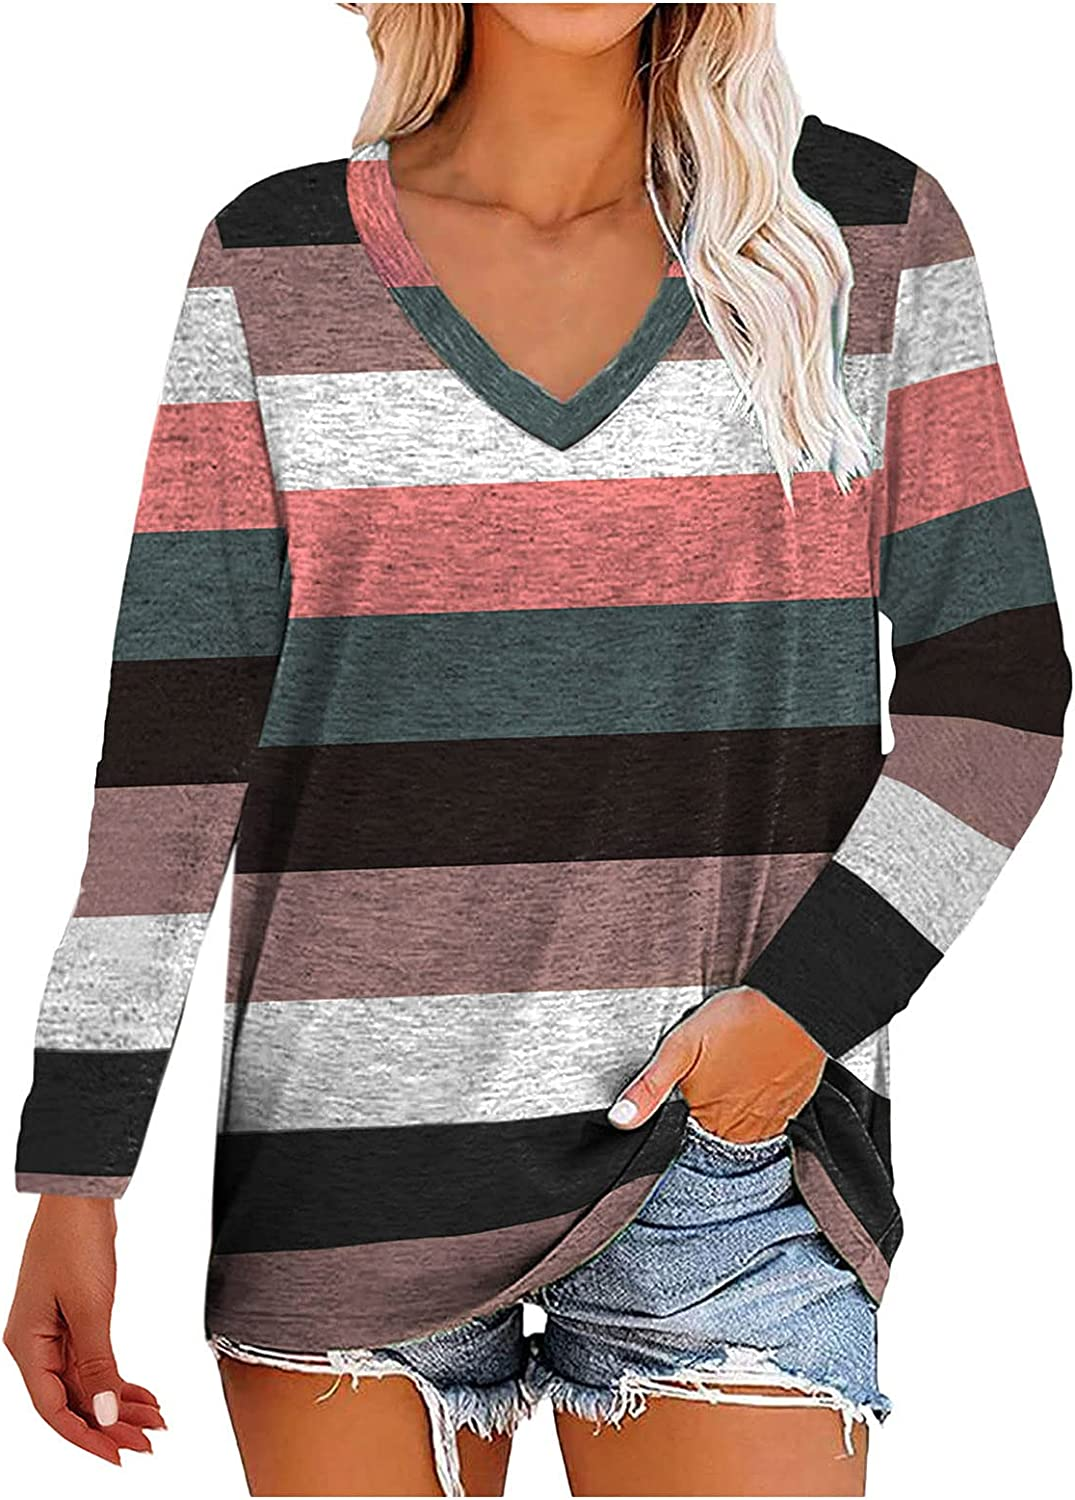 Womens Casual V Neck Sweatshirts Loose Fit Oversized T Shirts Blouses Color Block Striped Long Sleeve Tunic Tops